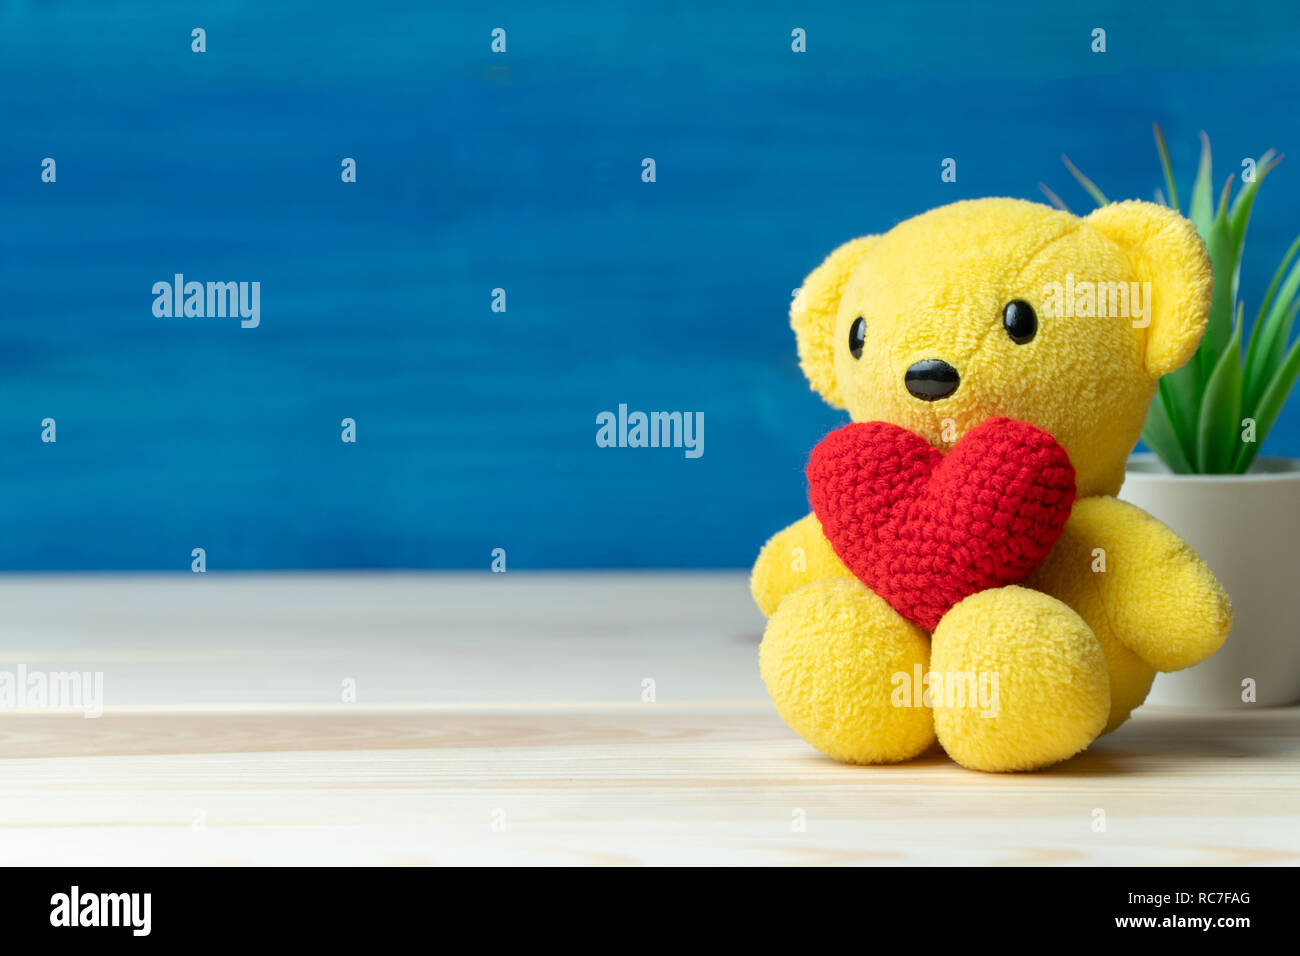 Blue Teddy Bears Stock Photos Amp Blue Teddy Bears Stock